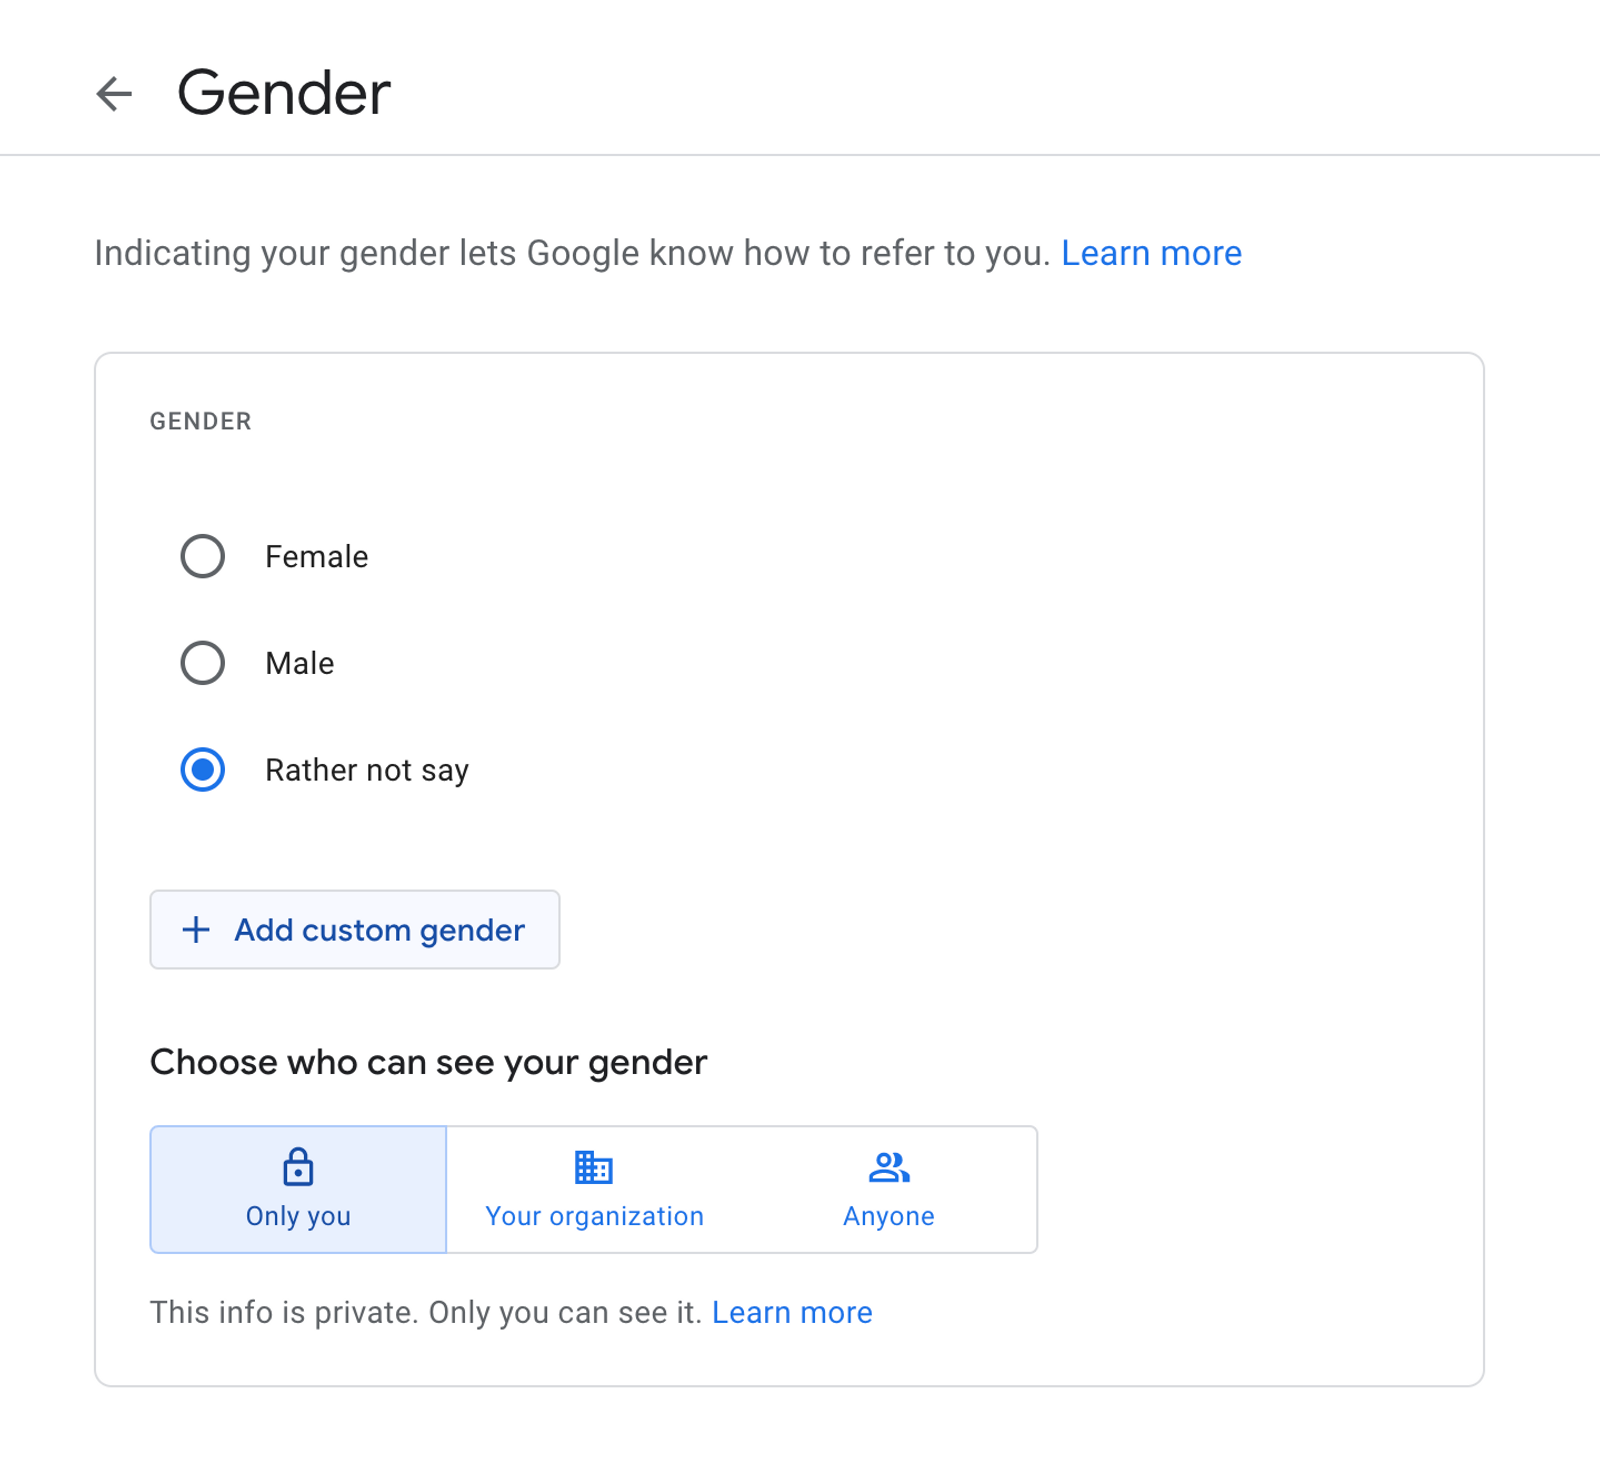 Gender selection on a form, 3 radio buttons (male, female, rather not say) with 'add custom gender' button underneath